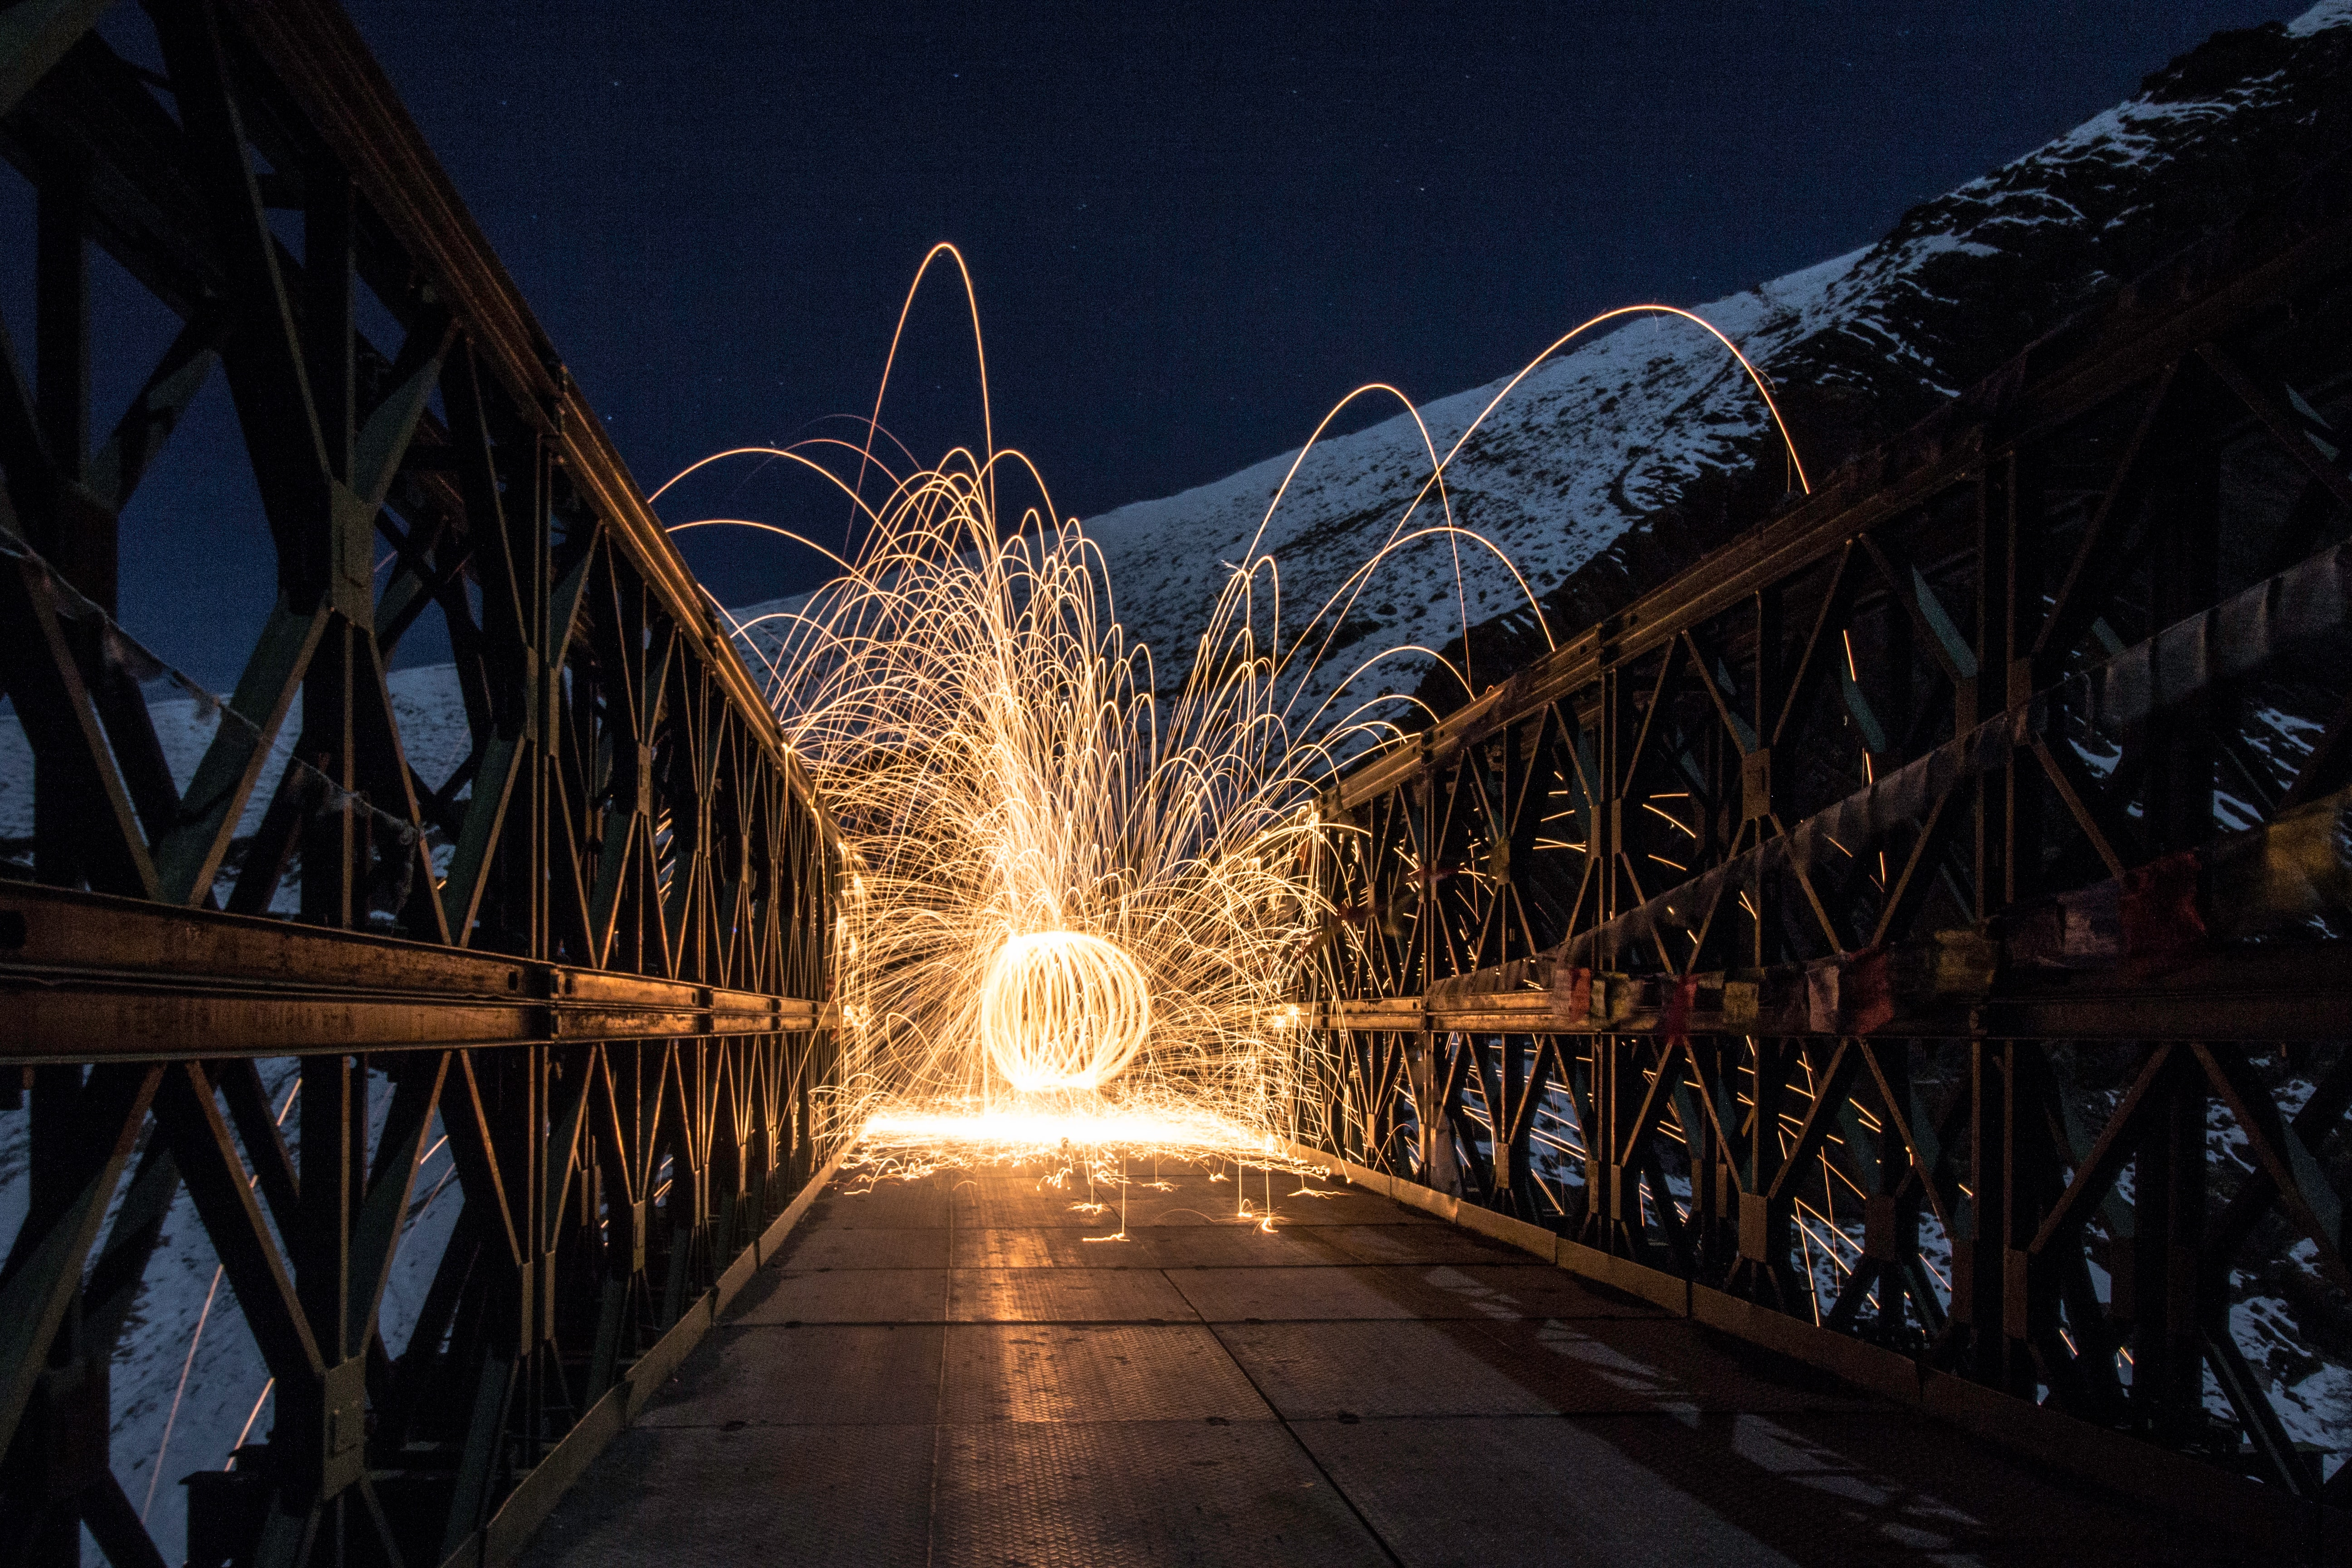 Ball spitting light on a bridge